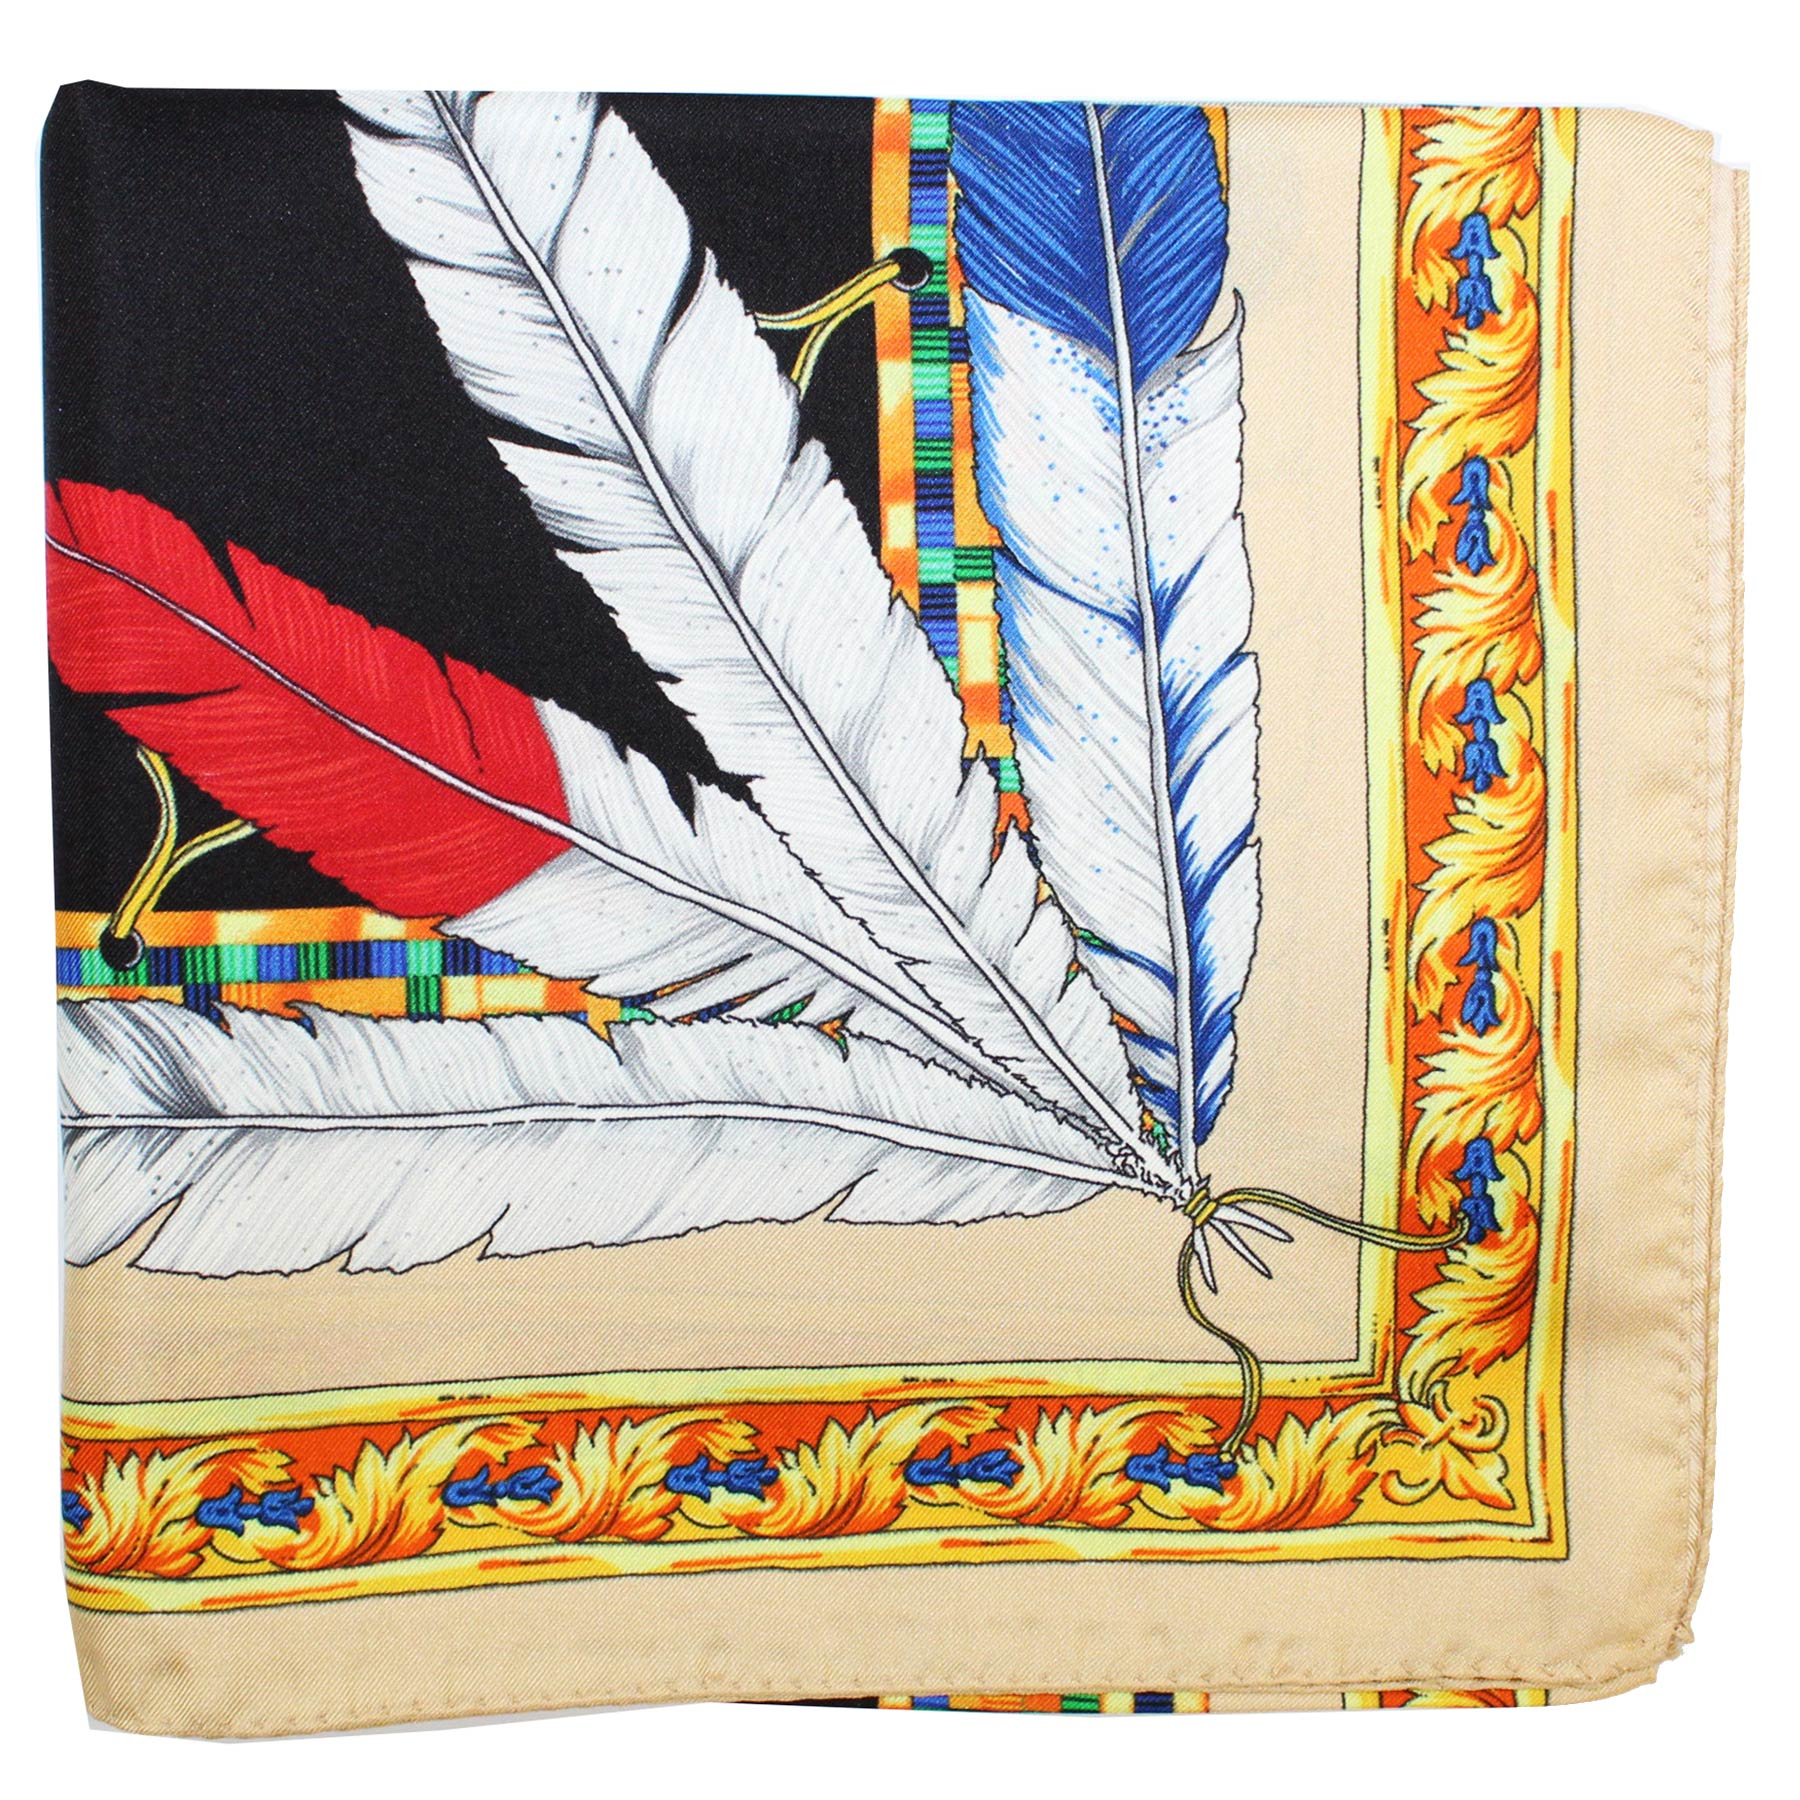 Versace Scarf Feather Headdress Design - Large Twill Silk Square Scarf